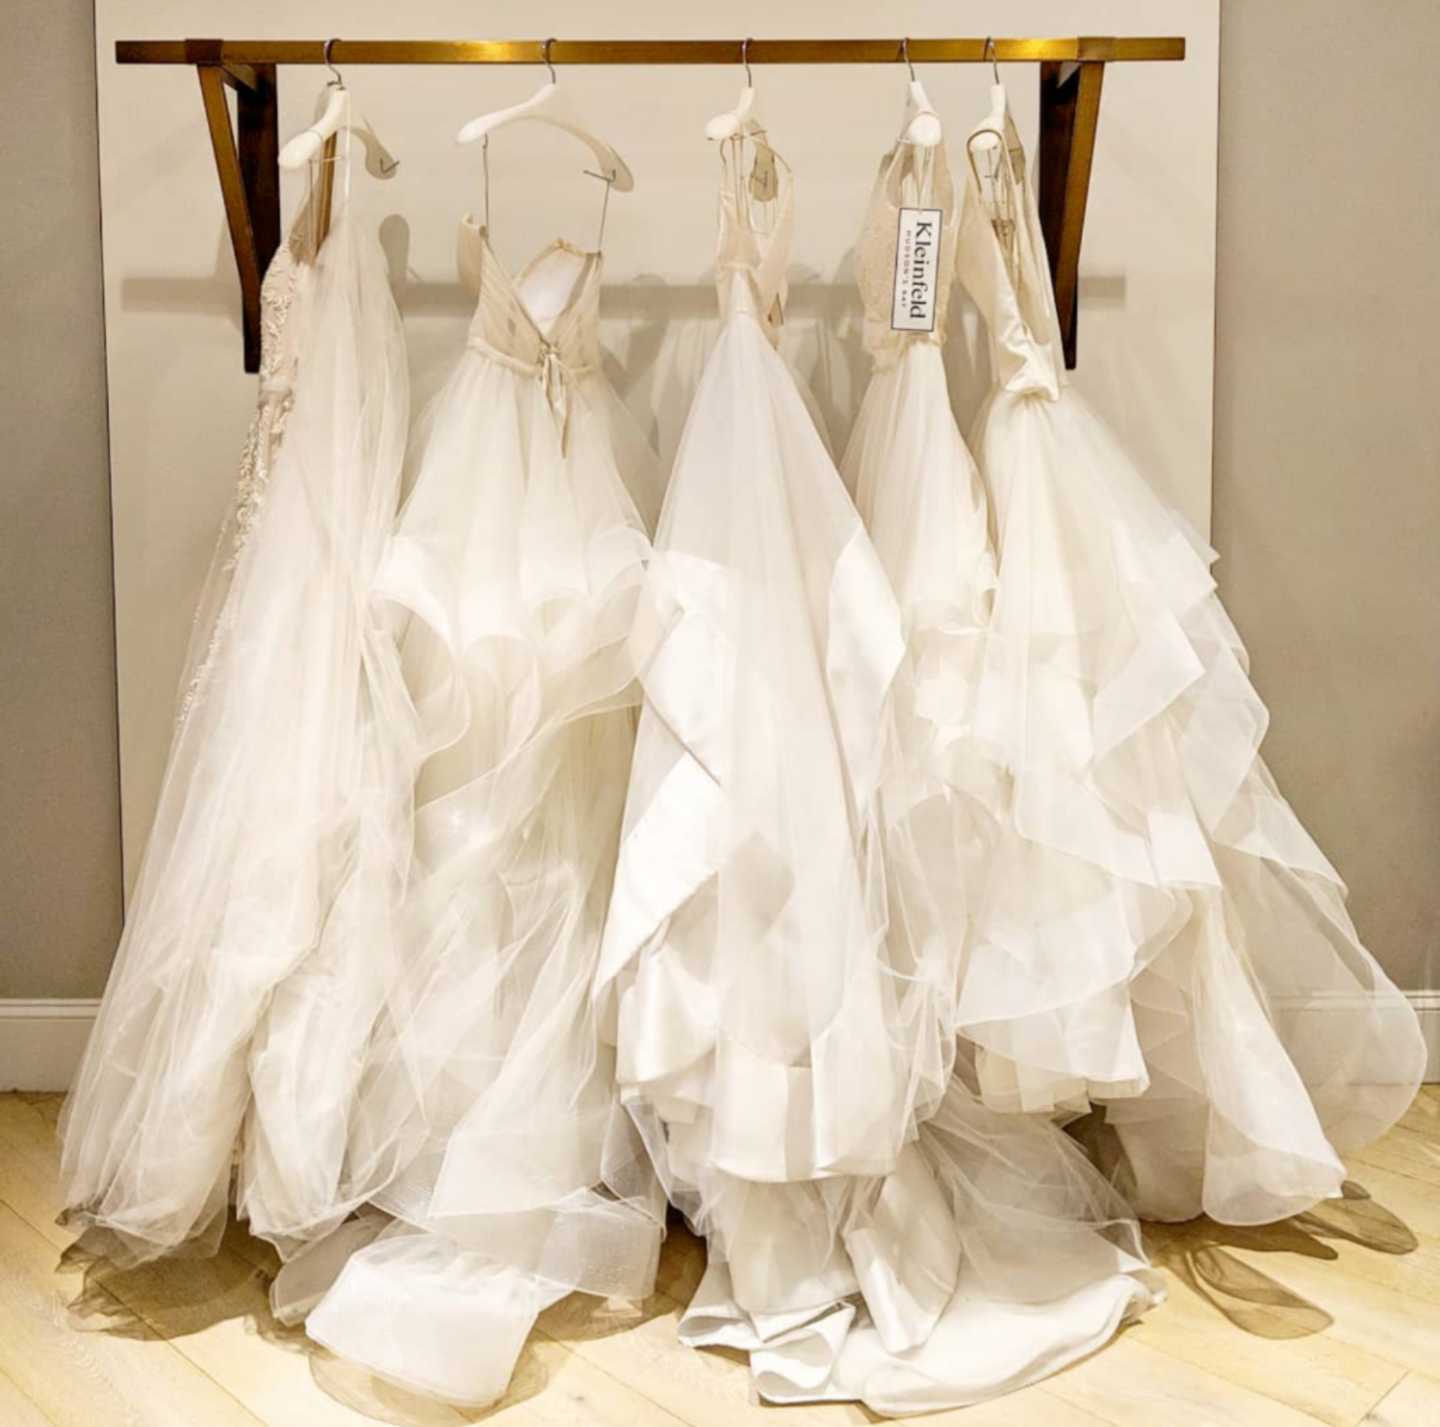 5 things no one tells you about wedding dress shopping